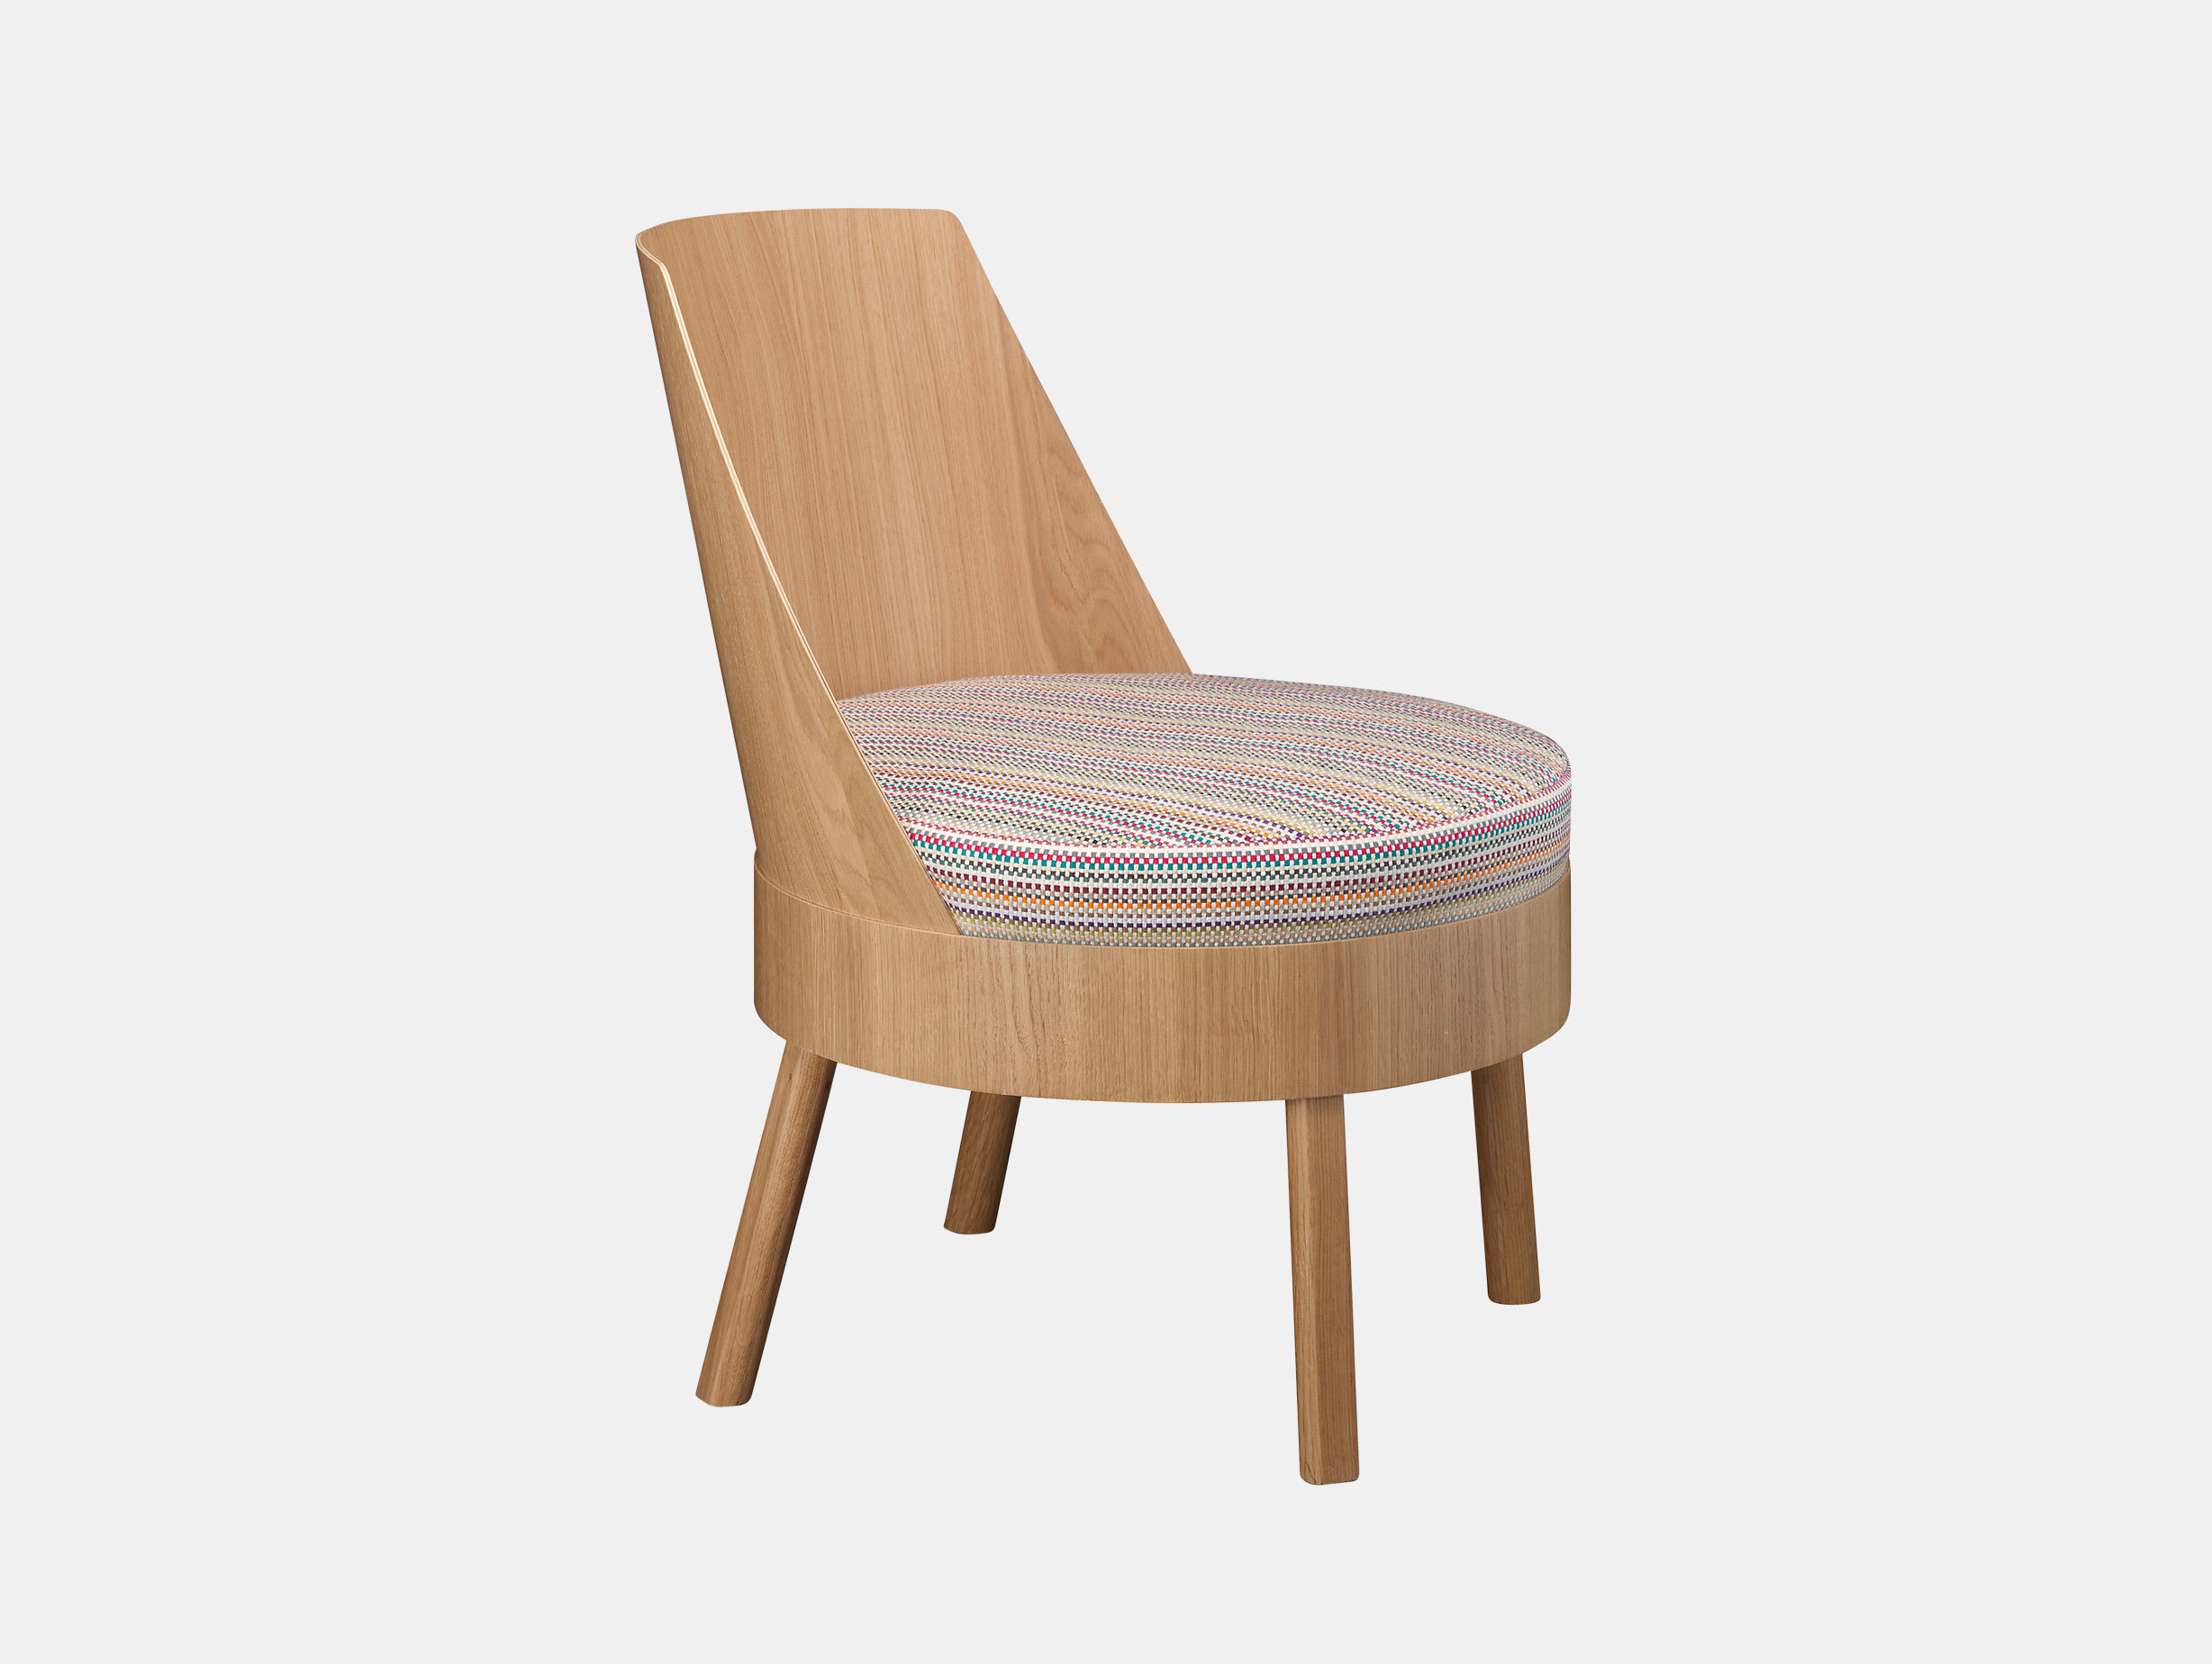 Bessy Lounge Chair image 1